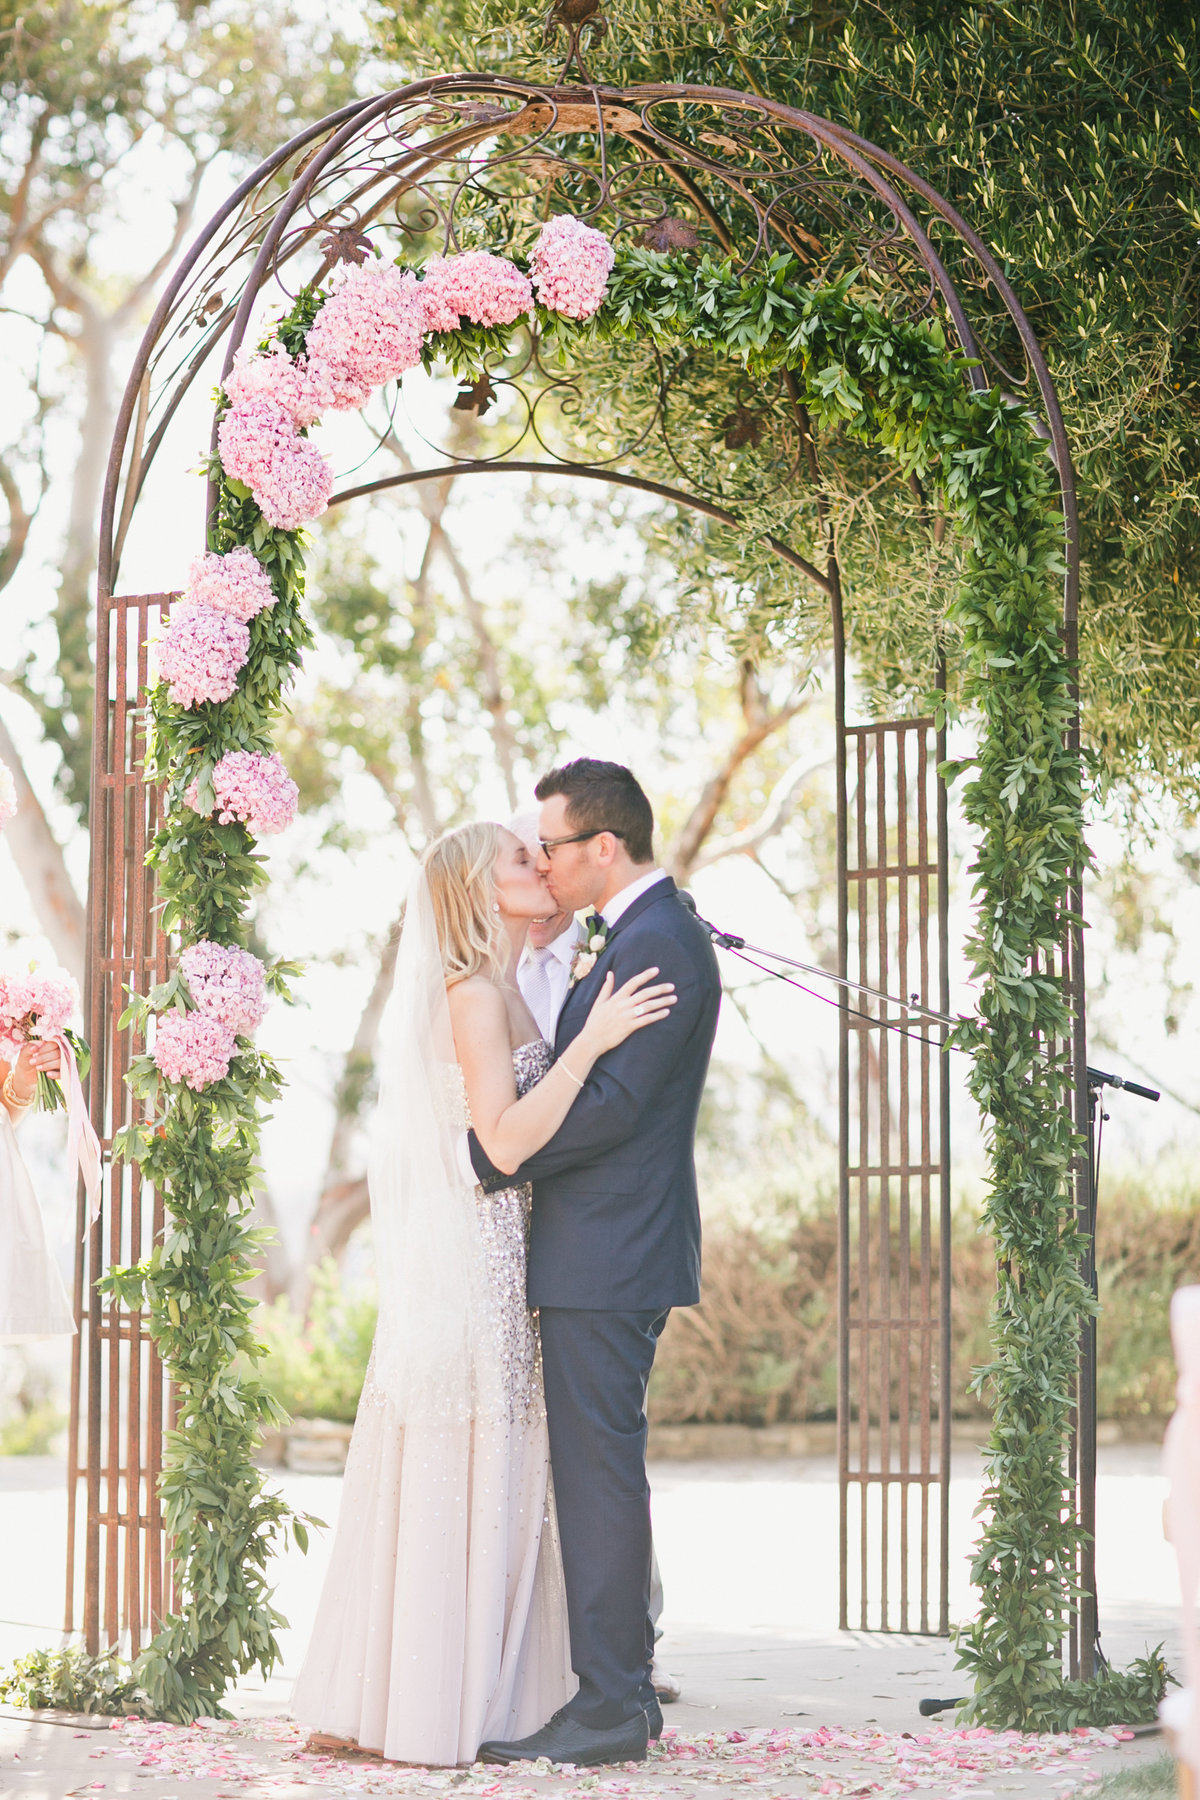 ahmason-ranch-santa-monica-calabasas-california-wedding-photographer-261